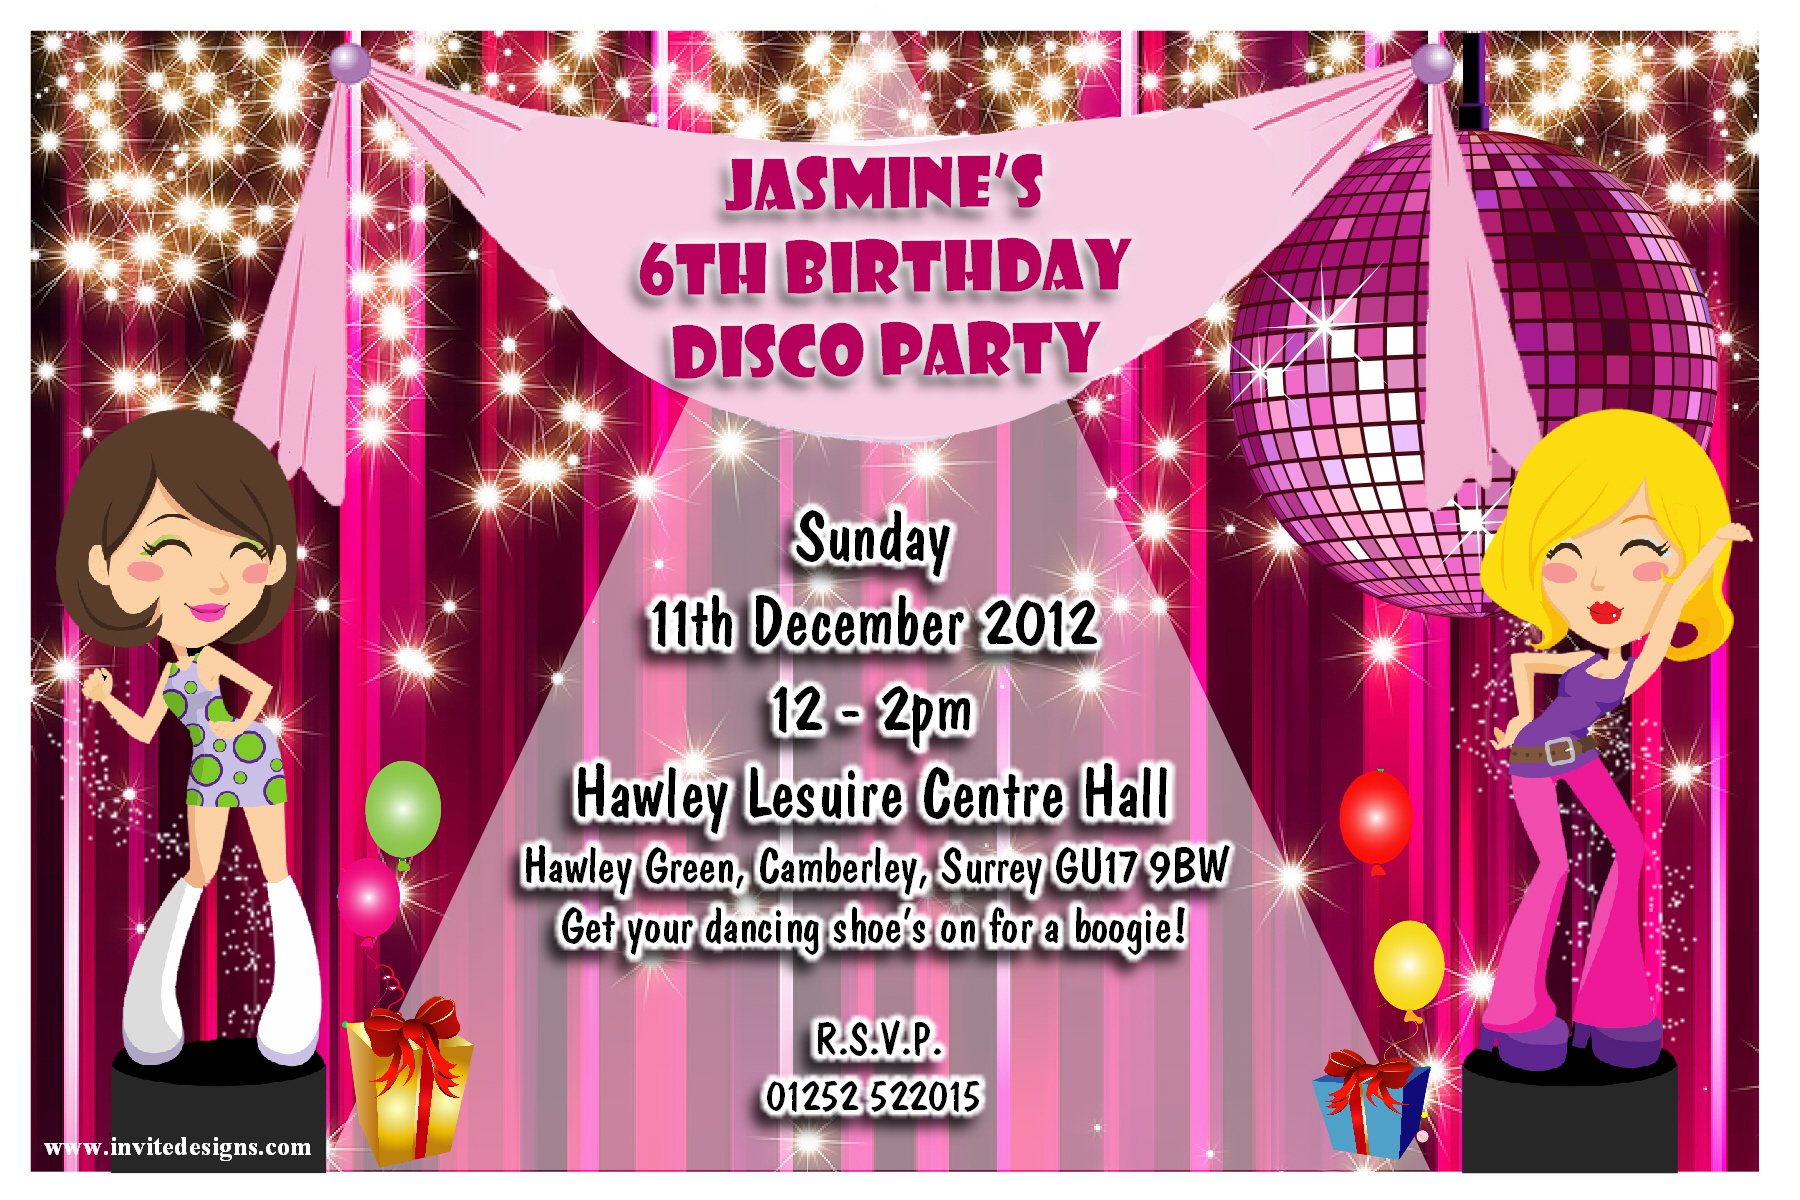 Free custom birthday invitations for adult downloadable free dance custom birthday invitations for adult filmwisefo